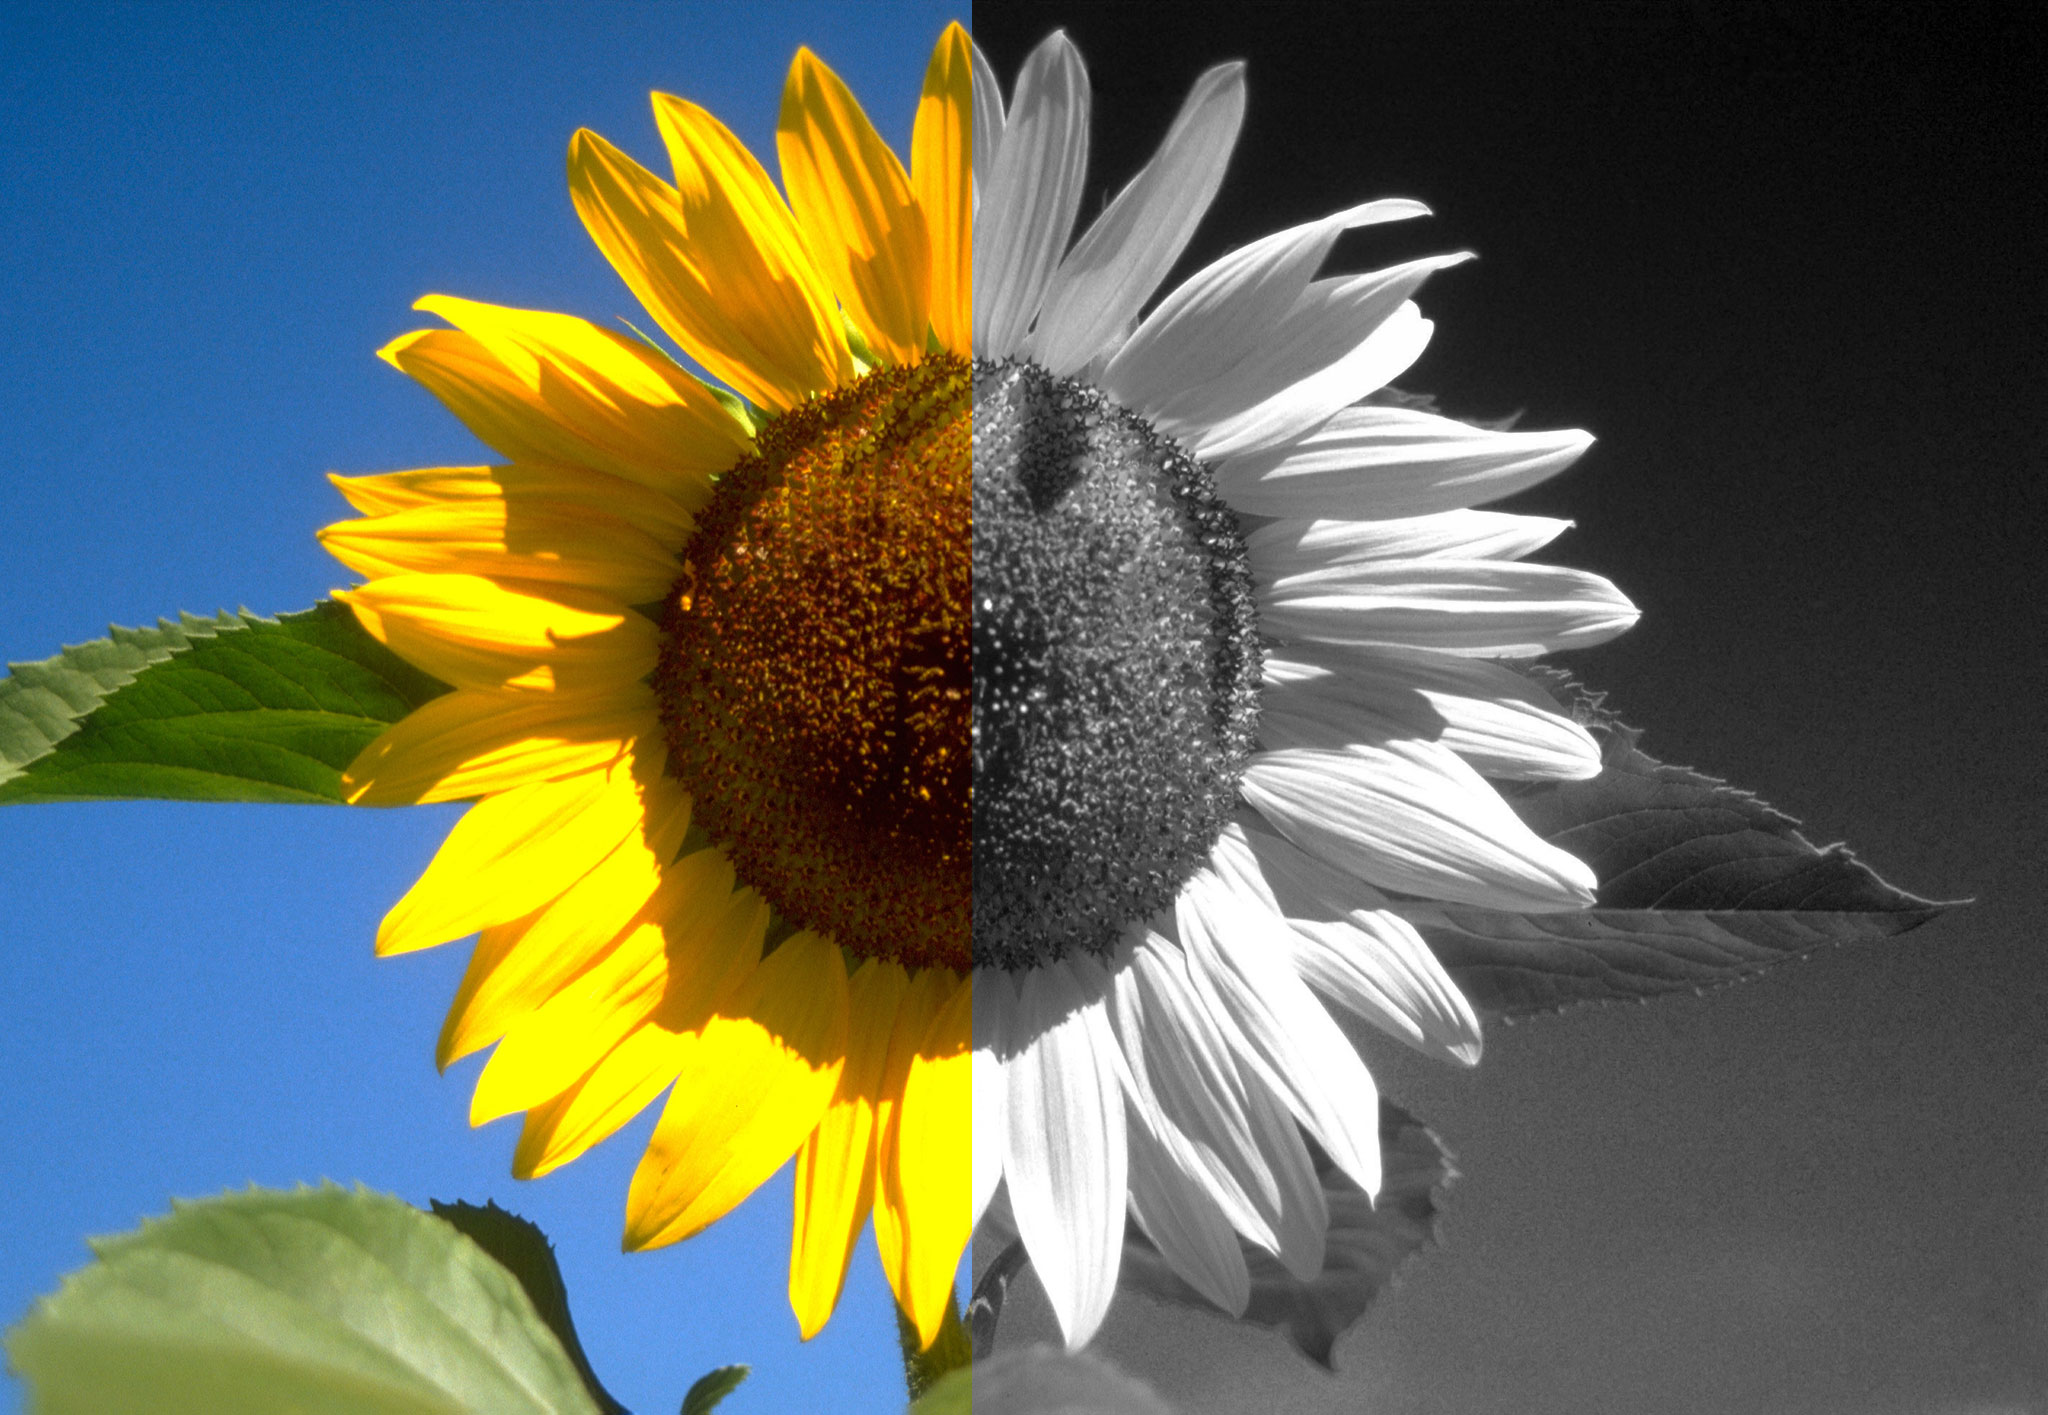 Sunflower in color and B&W